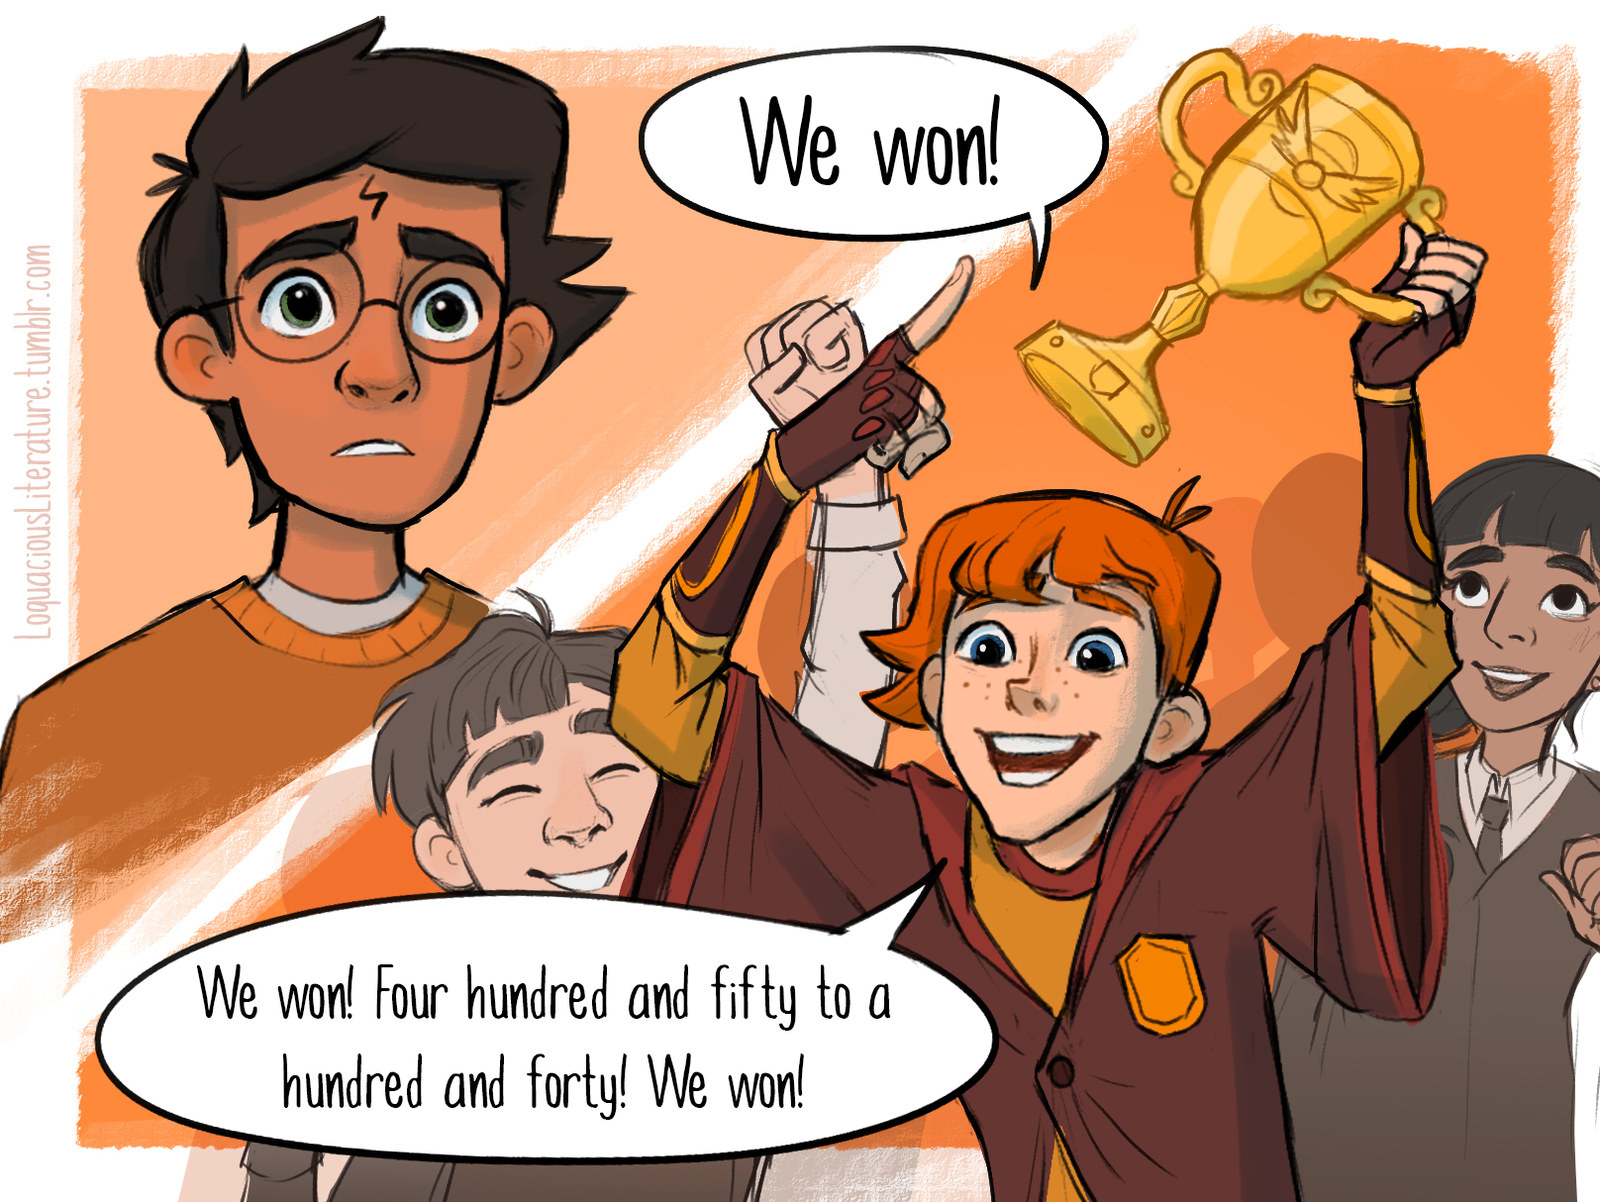 """This Comic Artist Draws Amazing """"Harry Potter"""" Scenes That Didn't Make The Movie"""